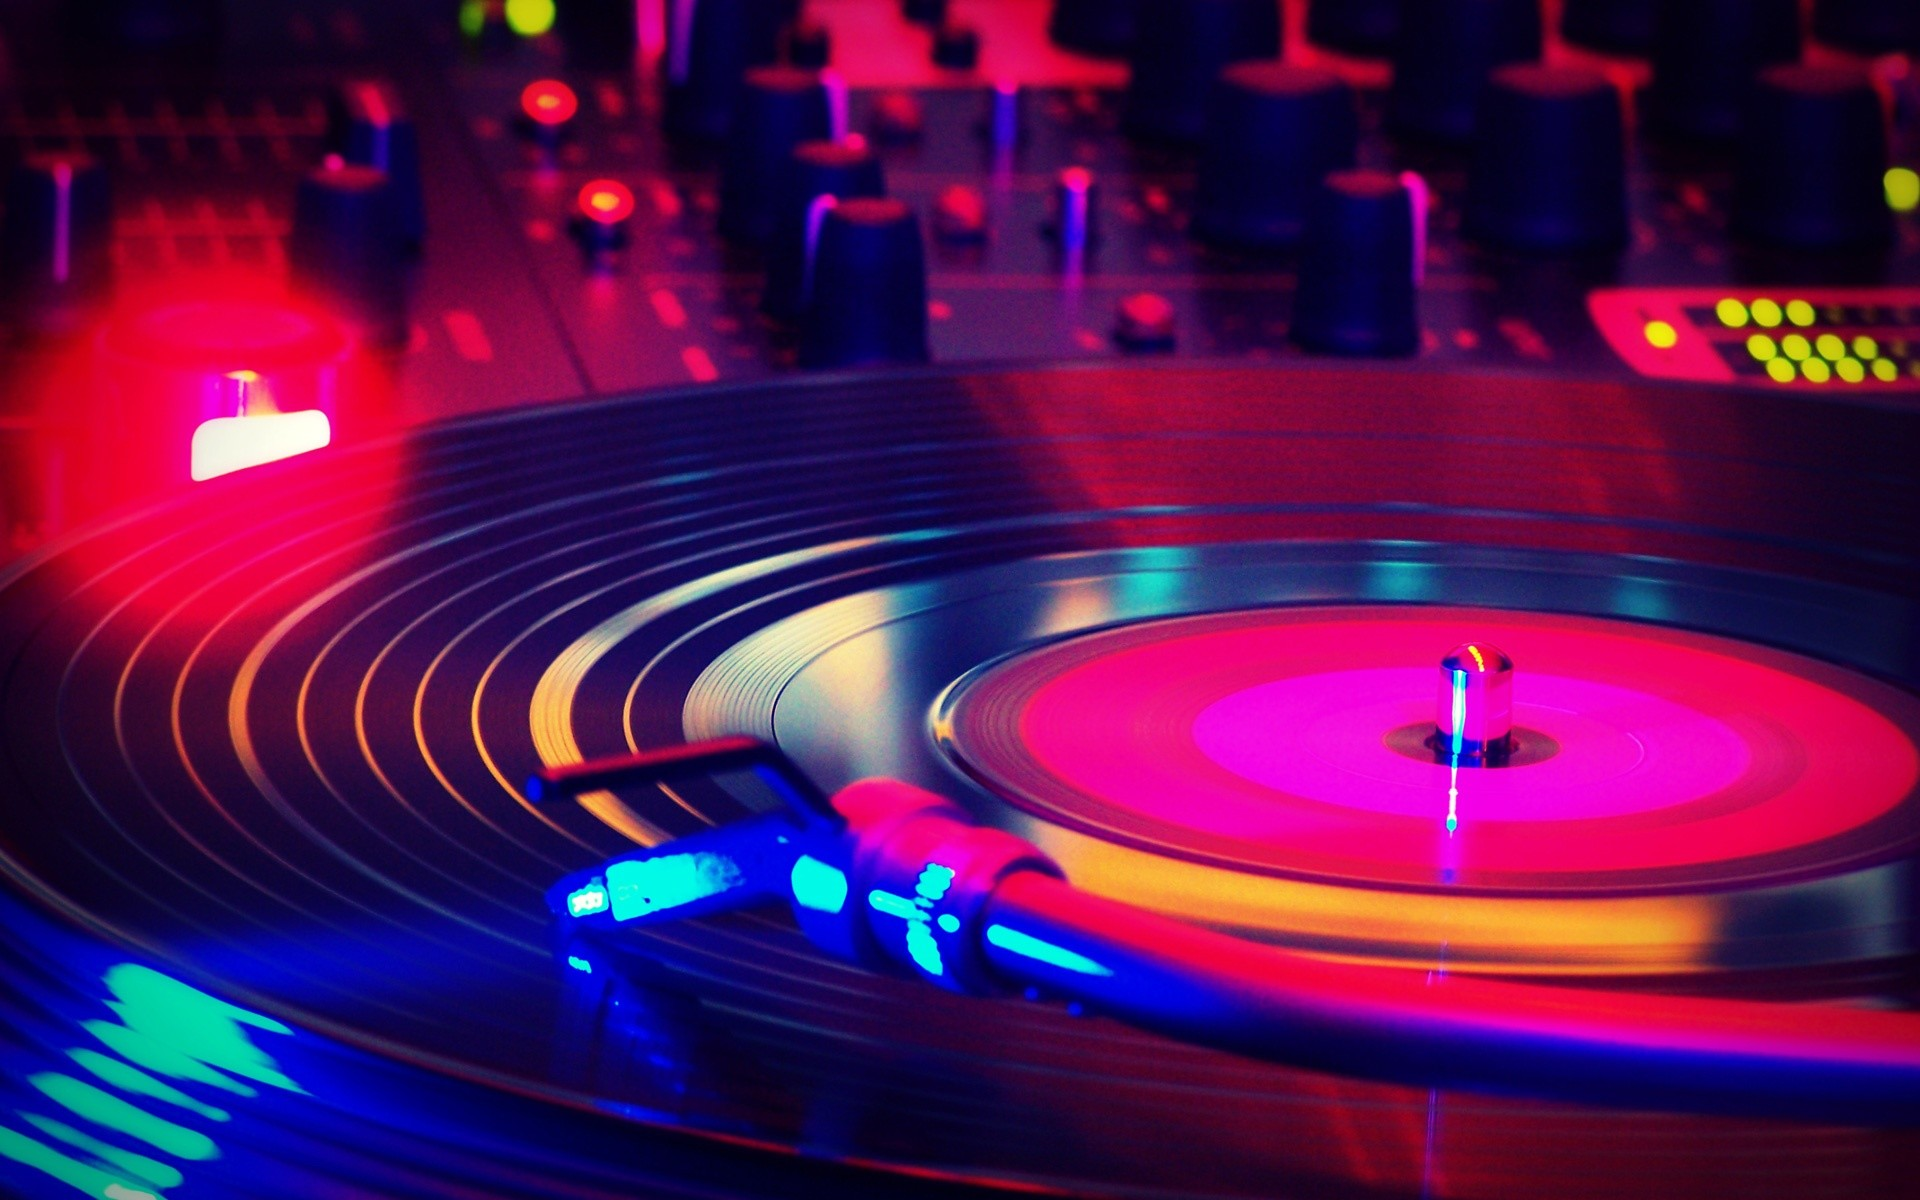 disco vinyl nights colorful turntable record spinning fast on music desktop  wallpaper music and dance wallpapers